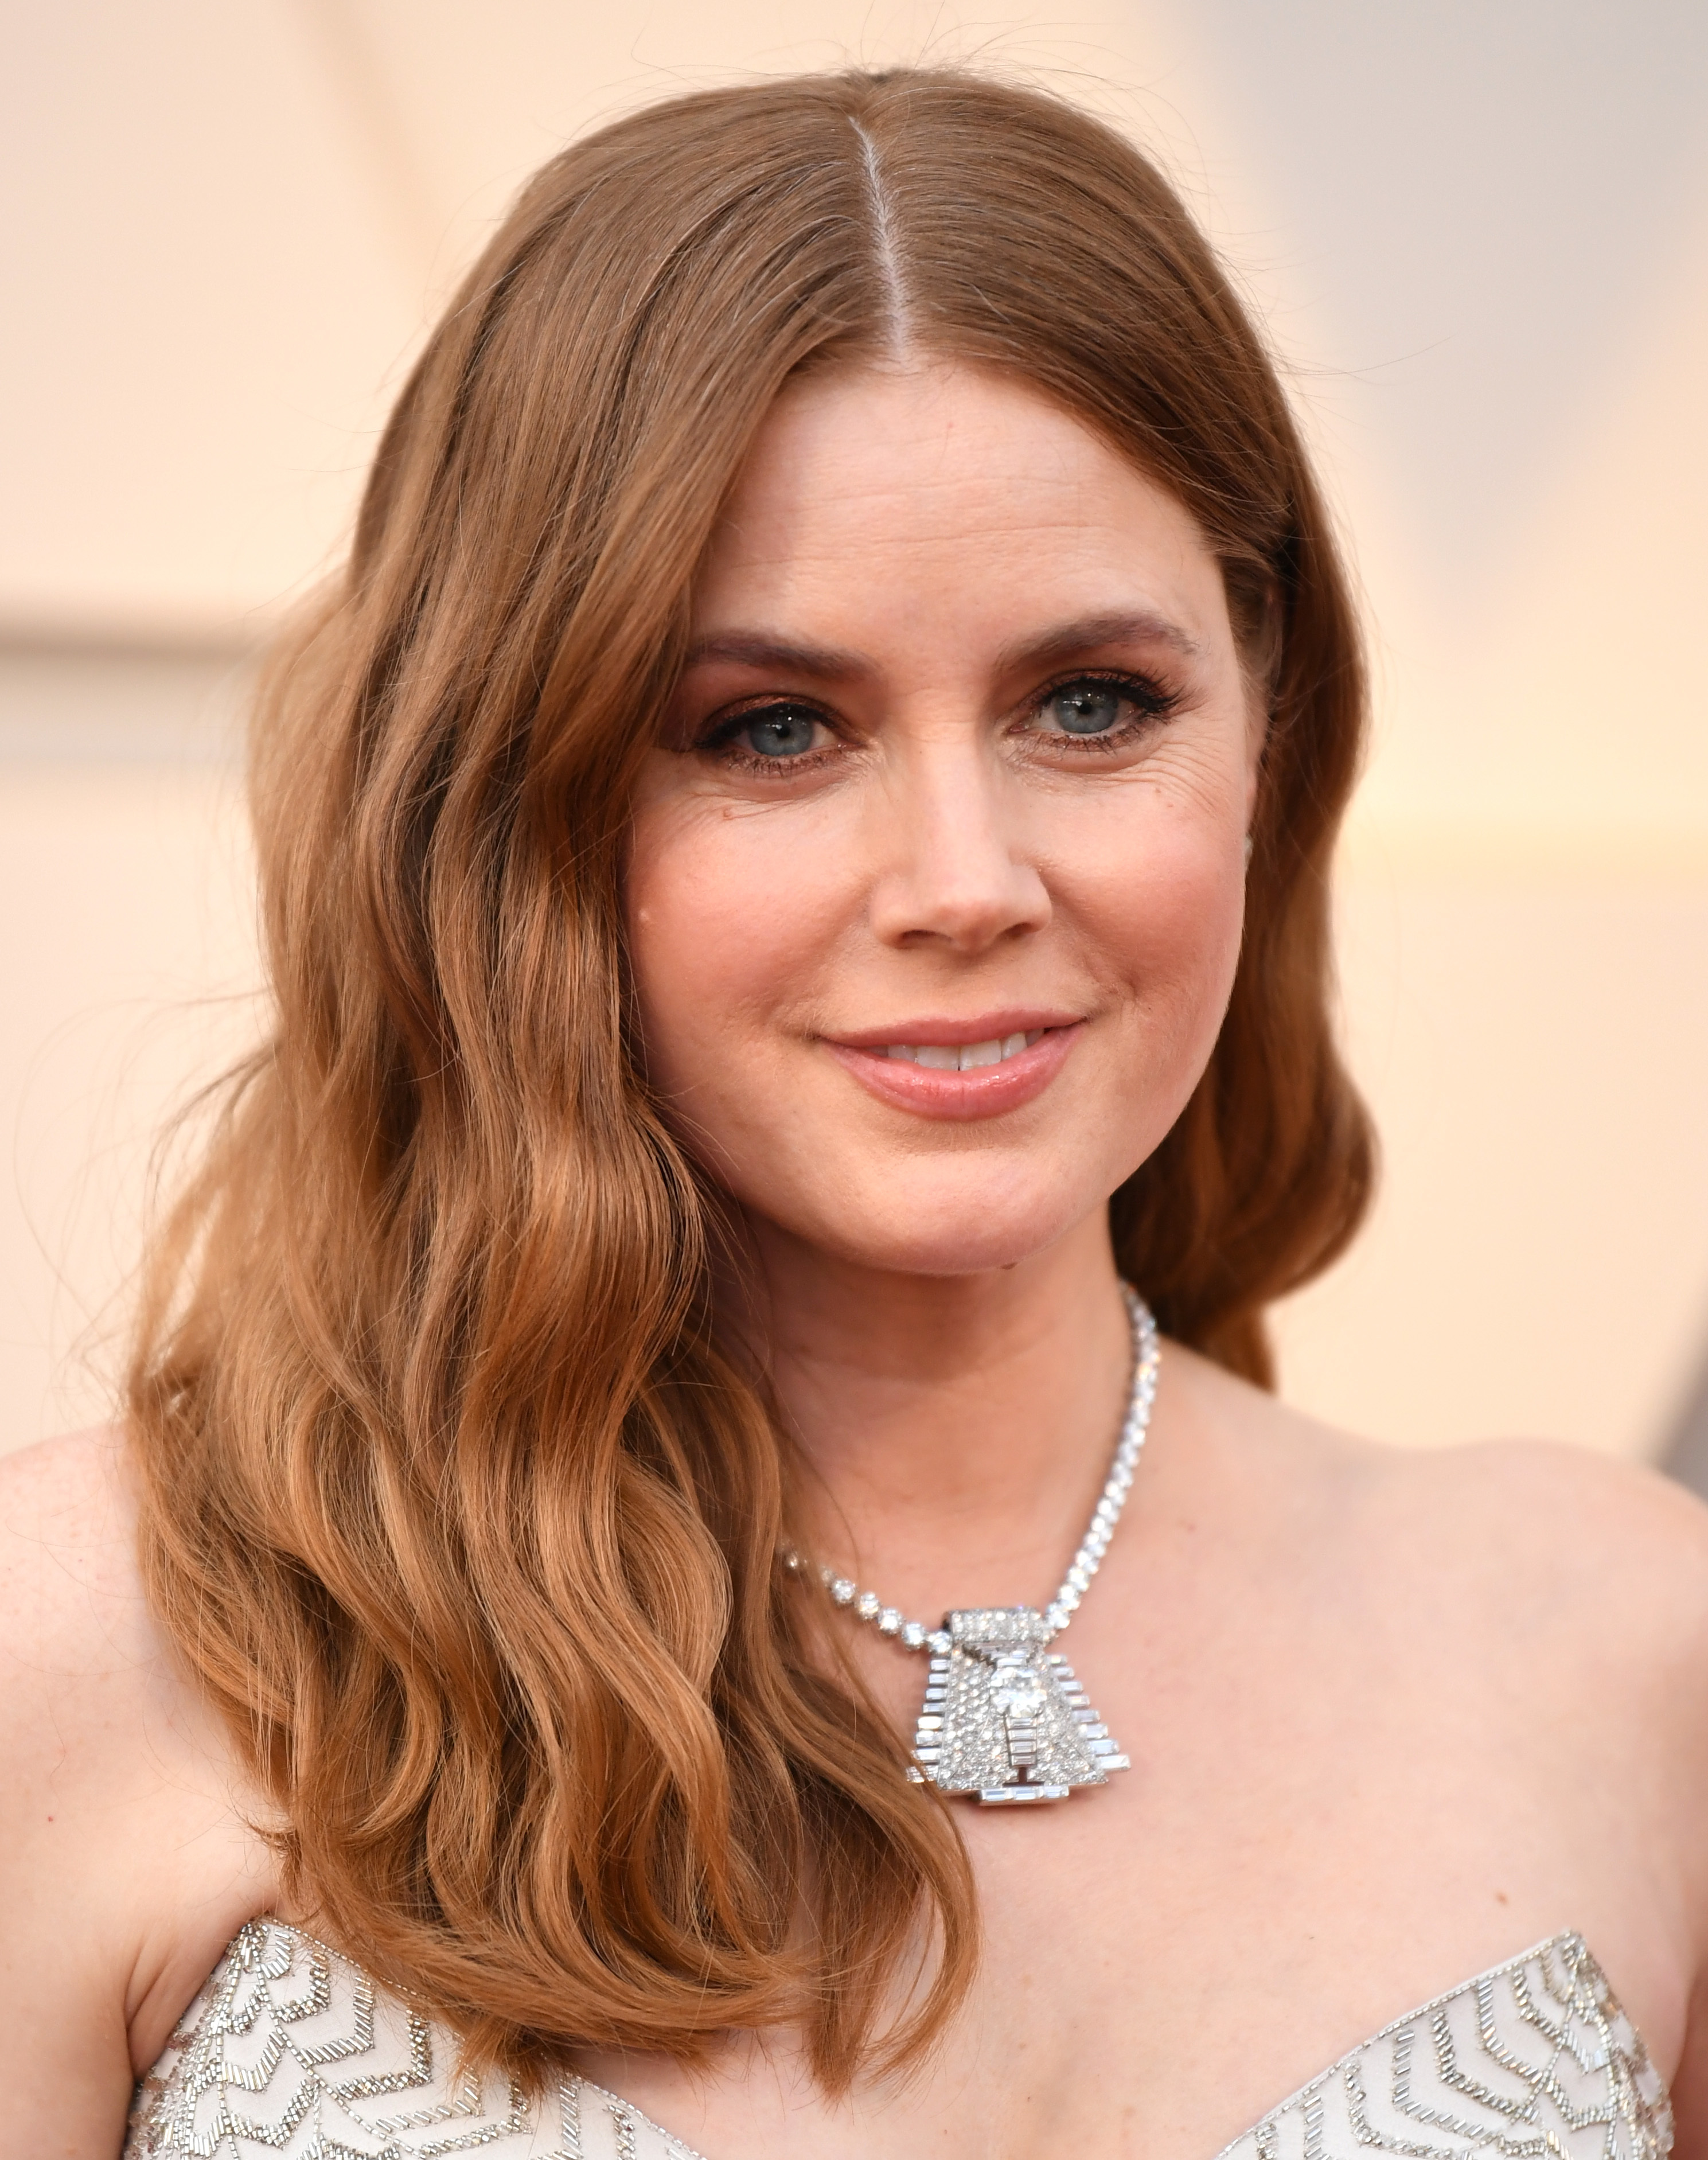 Amy Adams attends the 91st Annual Academy Awards in Los Angeles on Feb. 24, 2019.